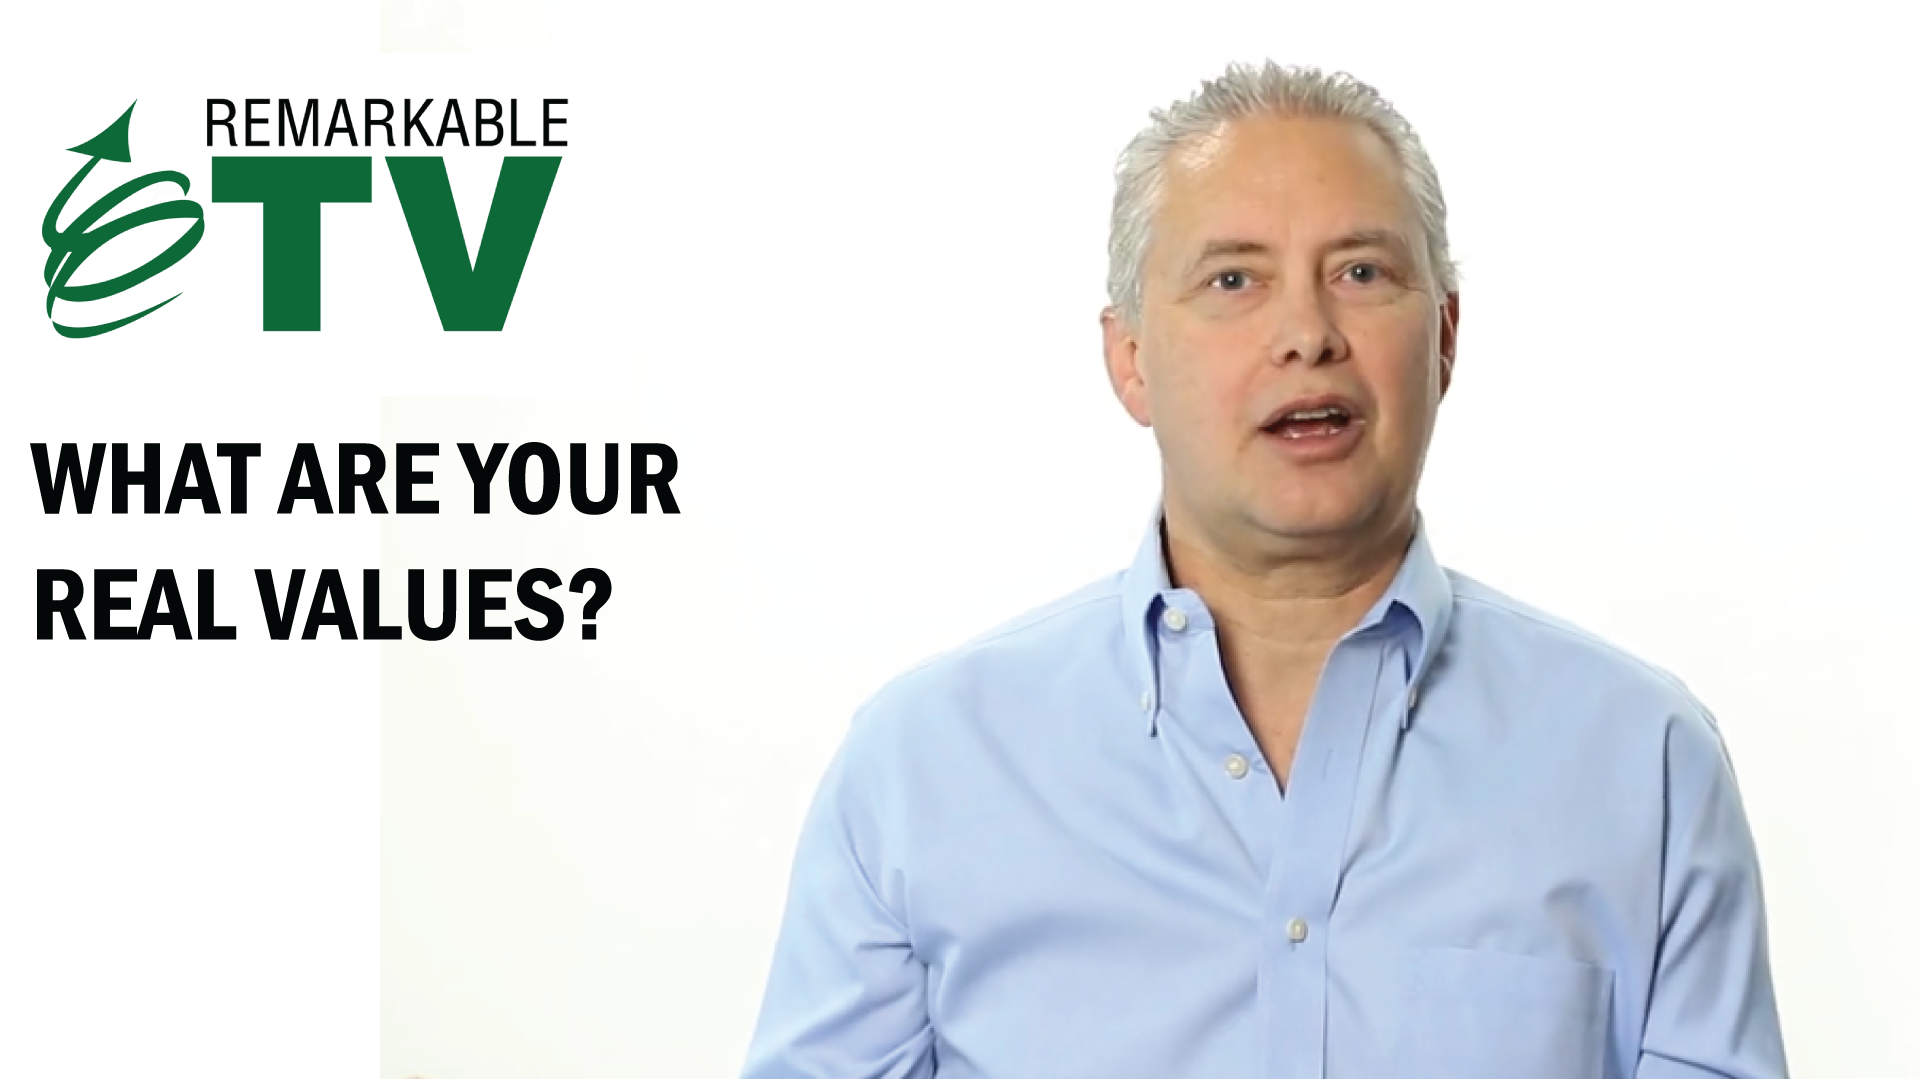 What are your real values? Kevin Eikenberry on Remarkable TV